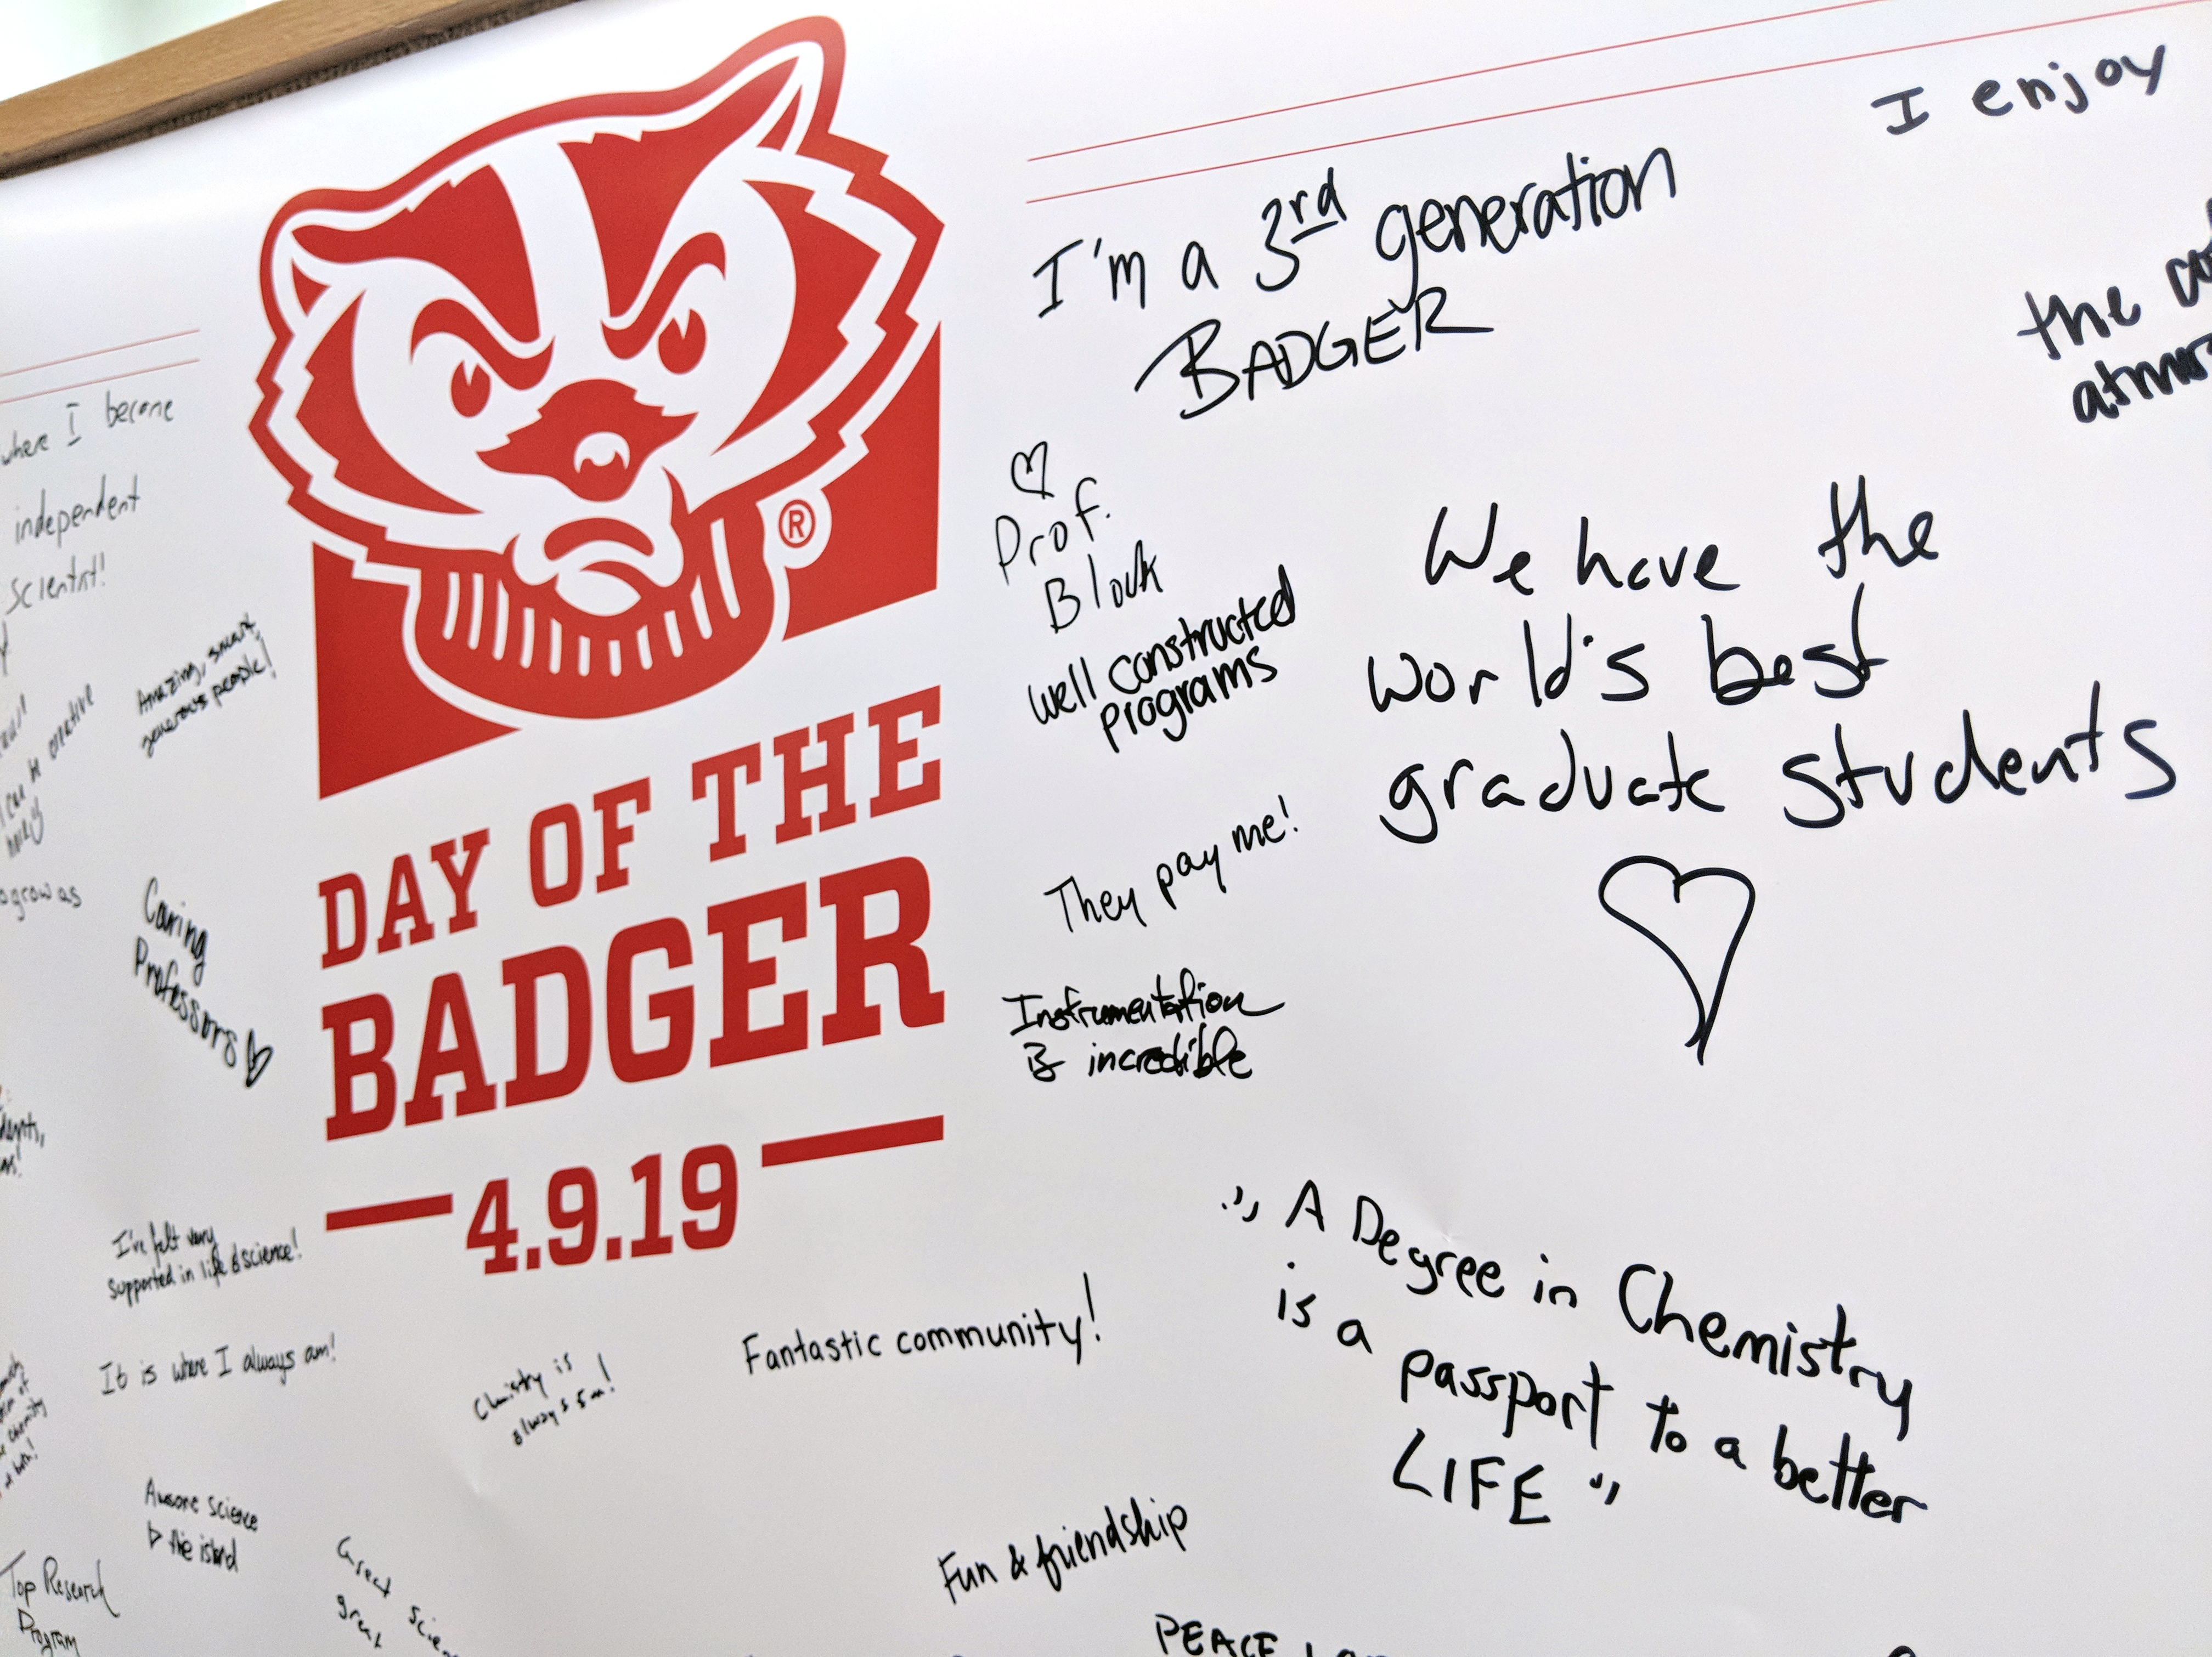 Day of the Badger 4.9.19 with comments from students including: I'm a 3rd generation Badger, heart Prof. Block, Well constructed programs, We have the world's best graduate students, They pay me!, Instrumentation is incredible, A degree in chemistry is a passport to a better life